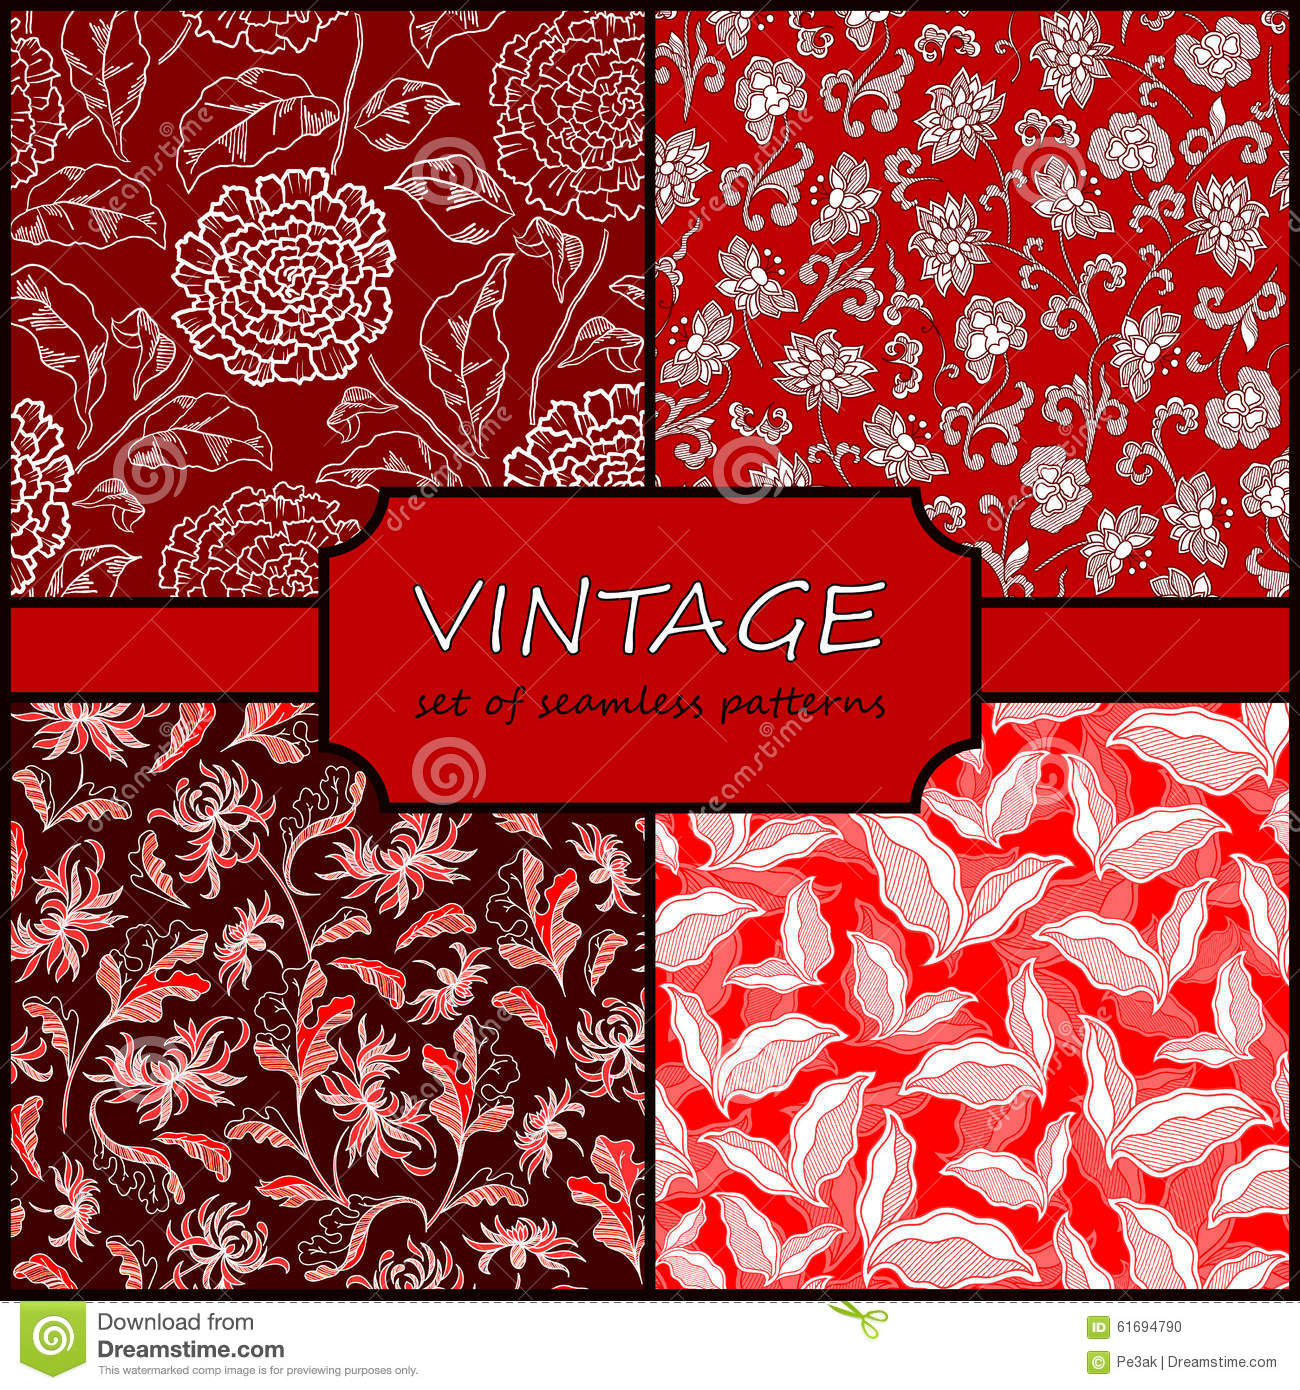 vintage repeating wallpaper - photo #33